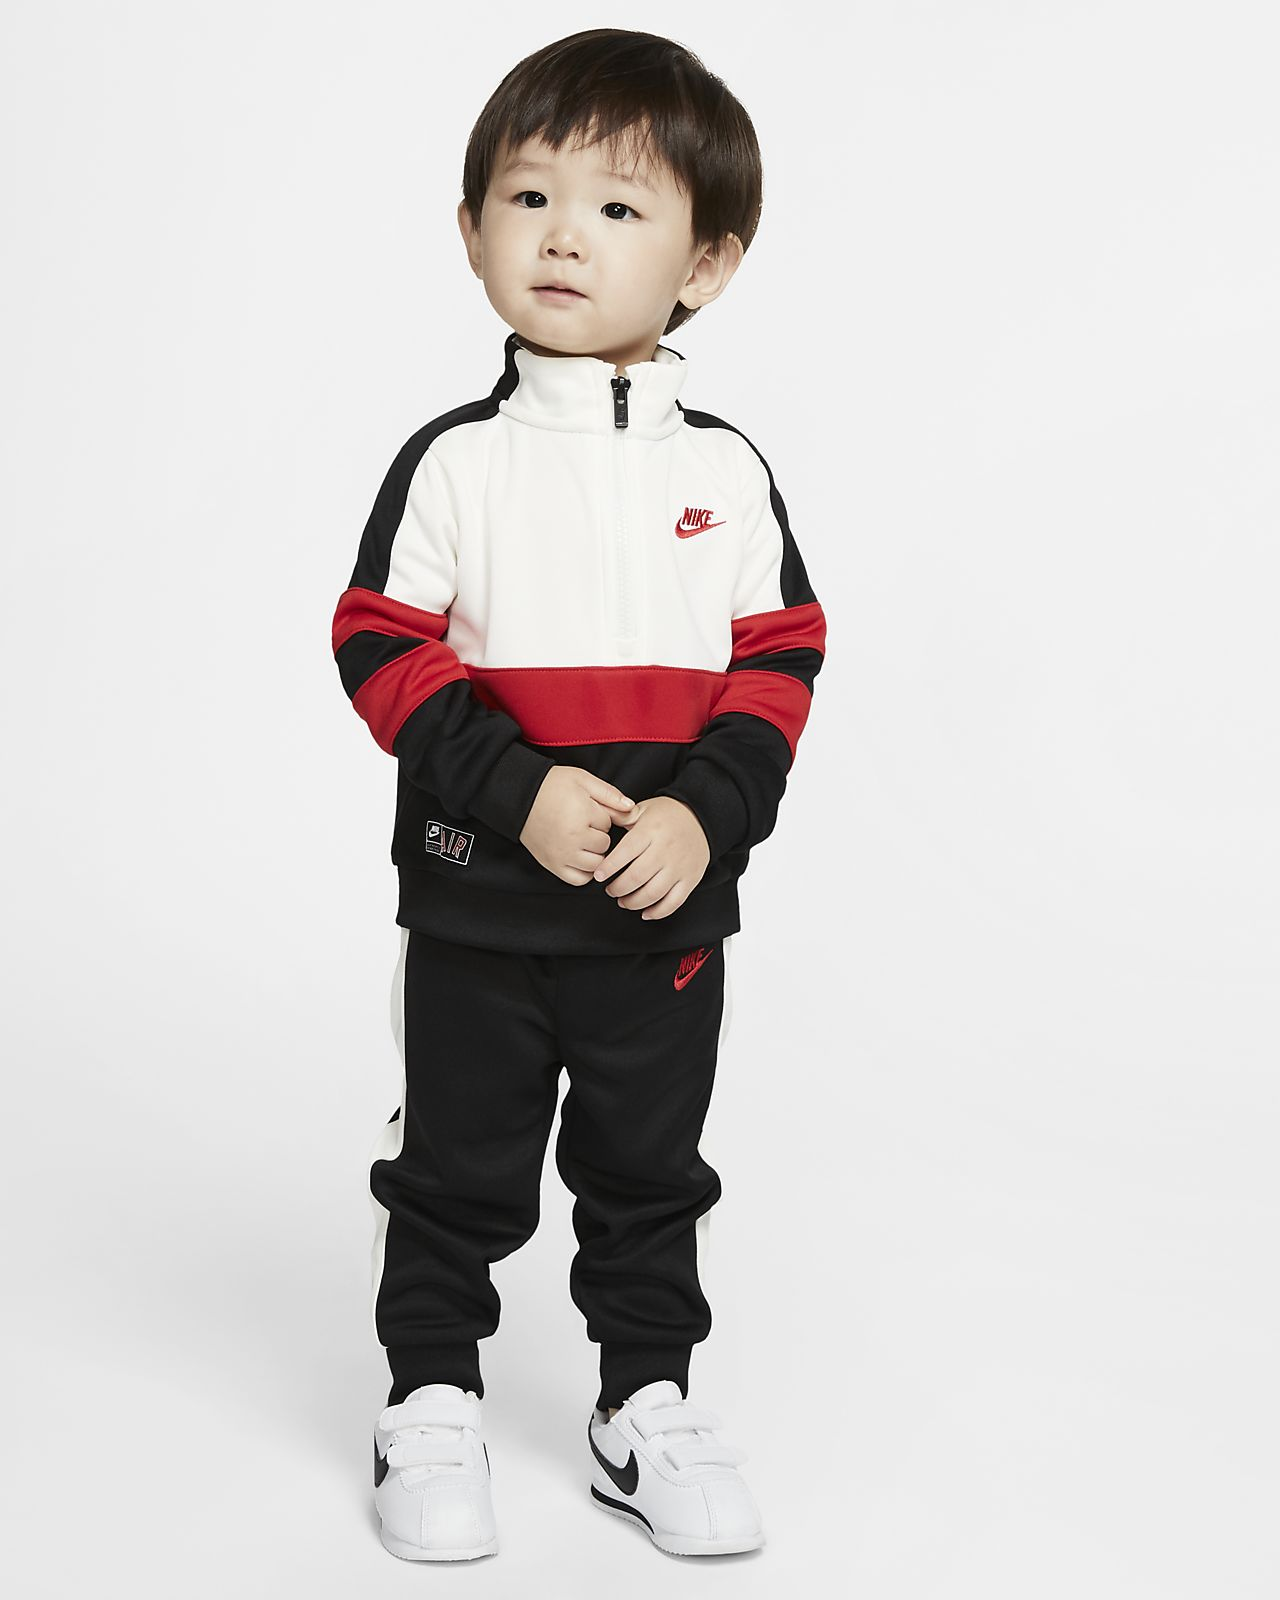 Nike Air Baby (12-24M) 2-Piece Set